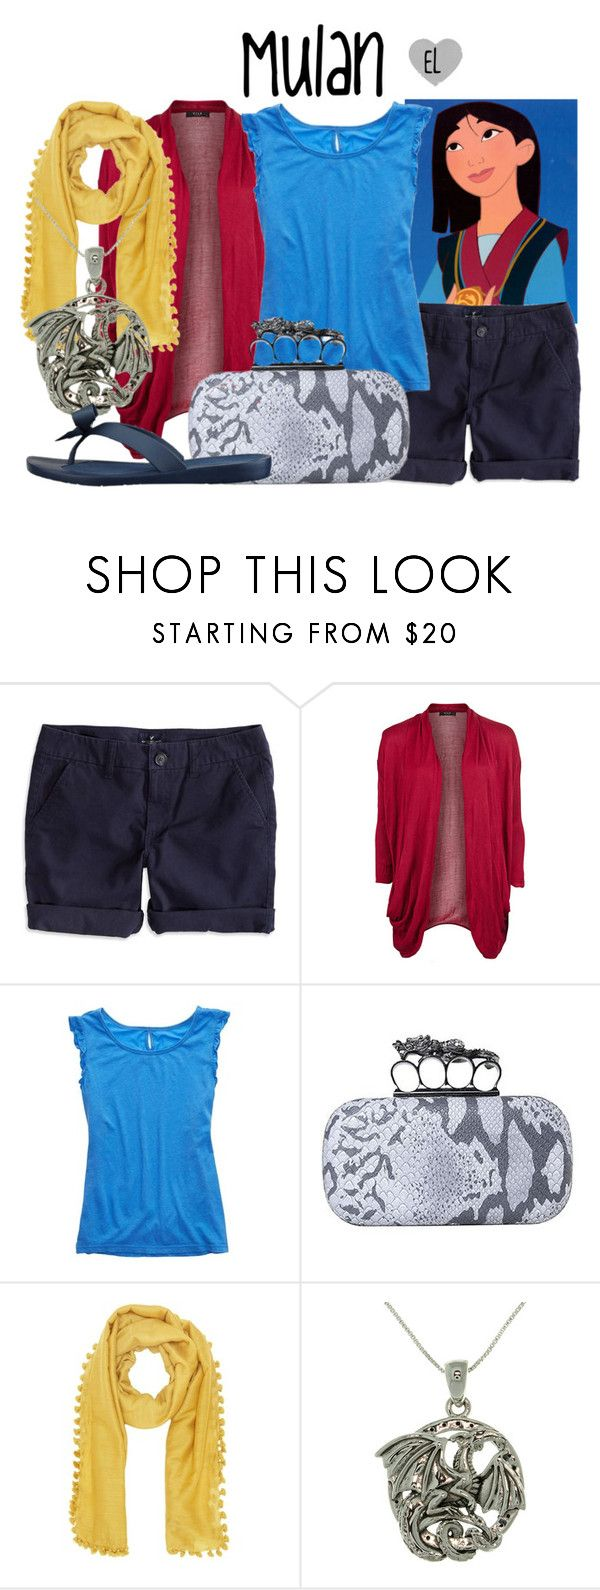 """Mulan (Summertime) -- Mulan"" by evil-laugh ❤ liked on Polyvore featuring Disney, American Eagle Outfitters, VILA, Jigsaw, Carolina Glamour Collection, GUESS, disney and mulan"